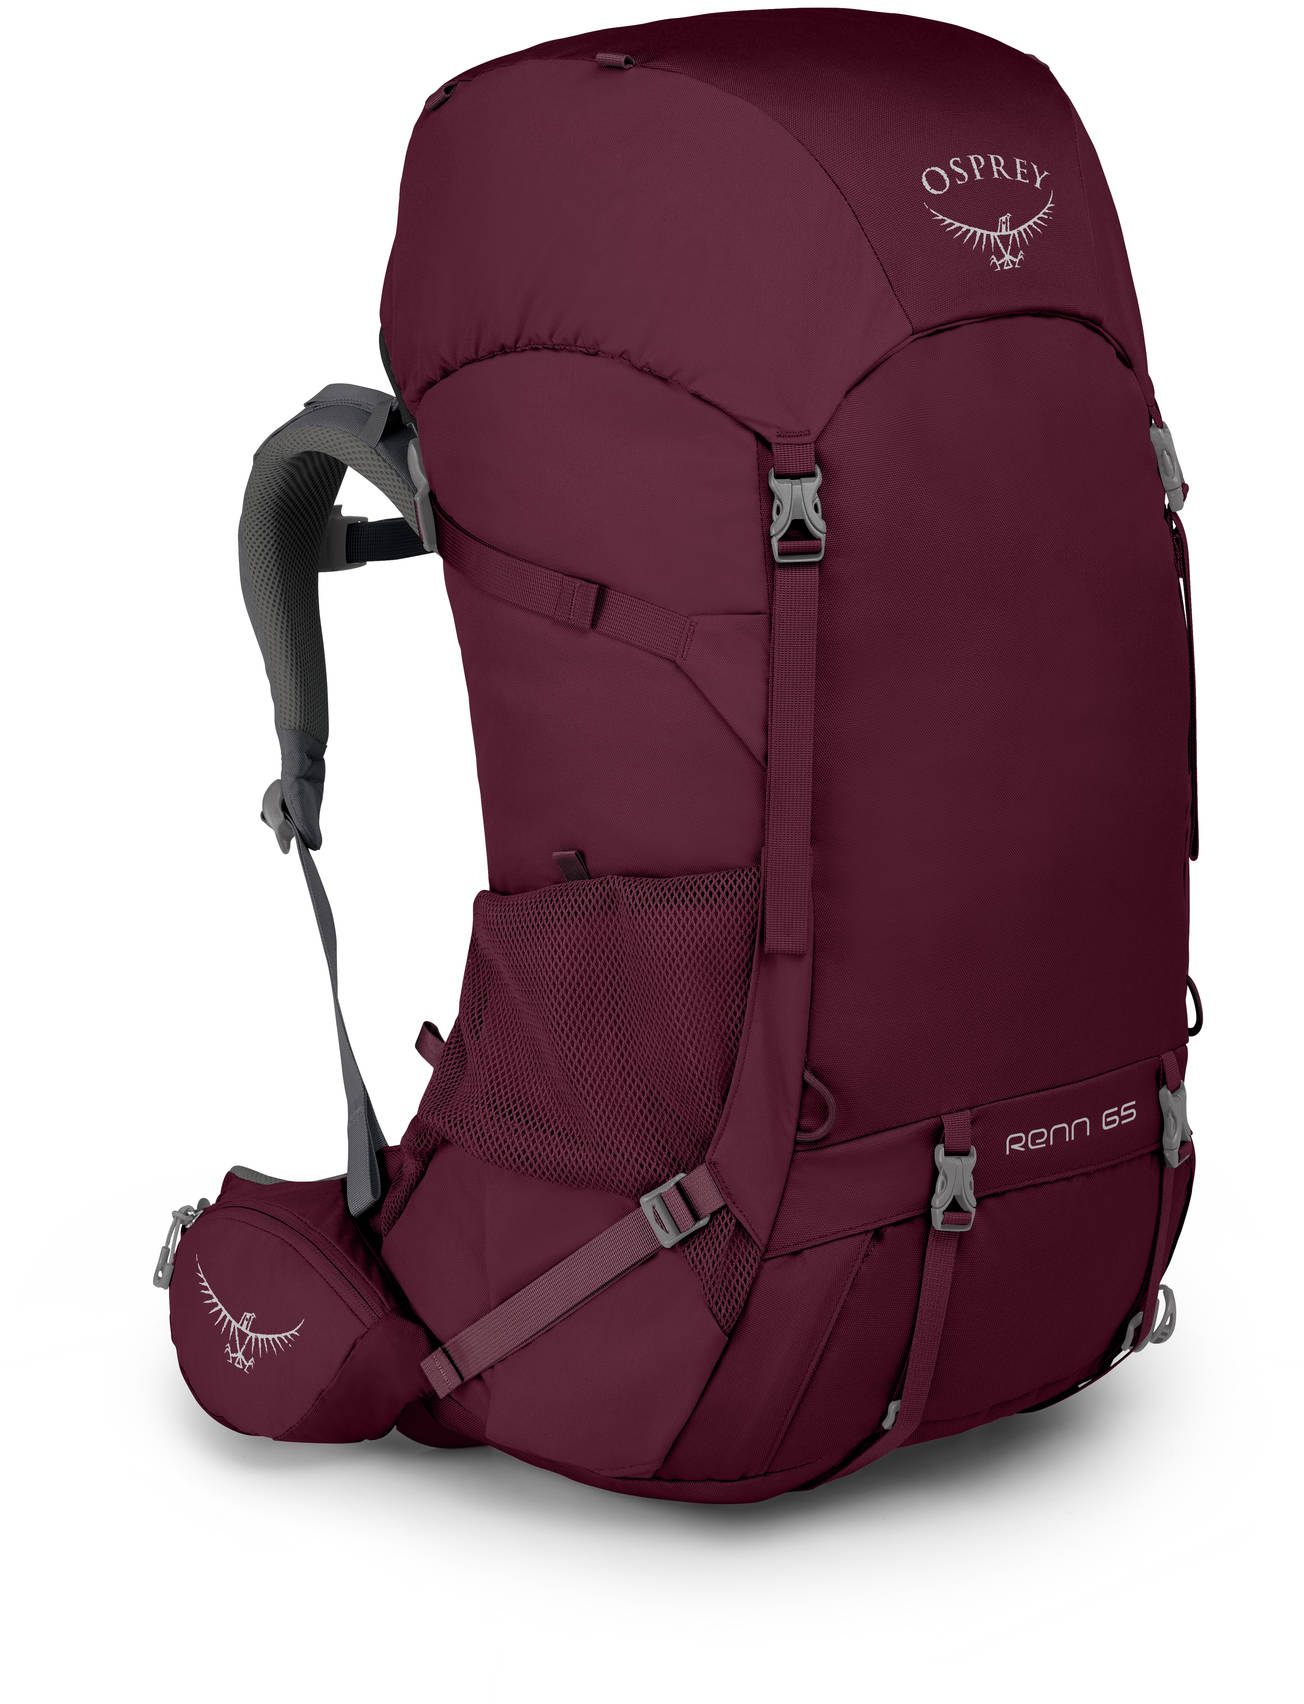 Renn Рюкзак женский туристический Osprey Renn 65 Aurora Purple (2019) Renn_65_S19_Side_Aurora_Purple_web.jpg